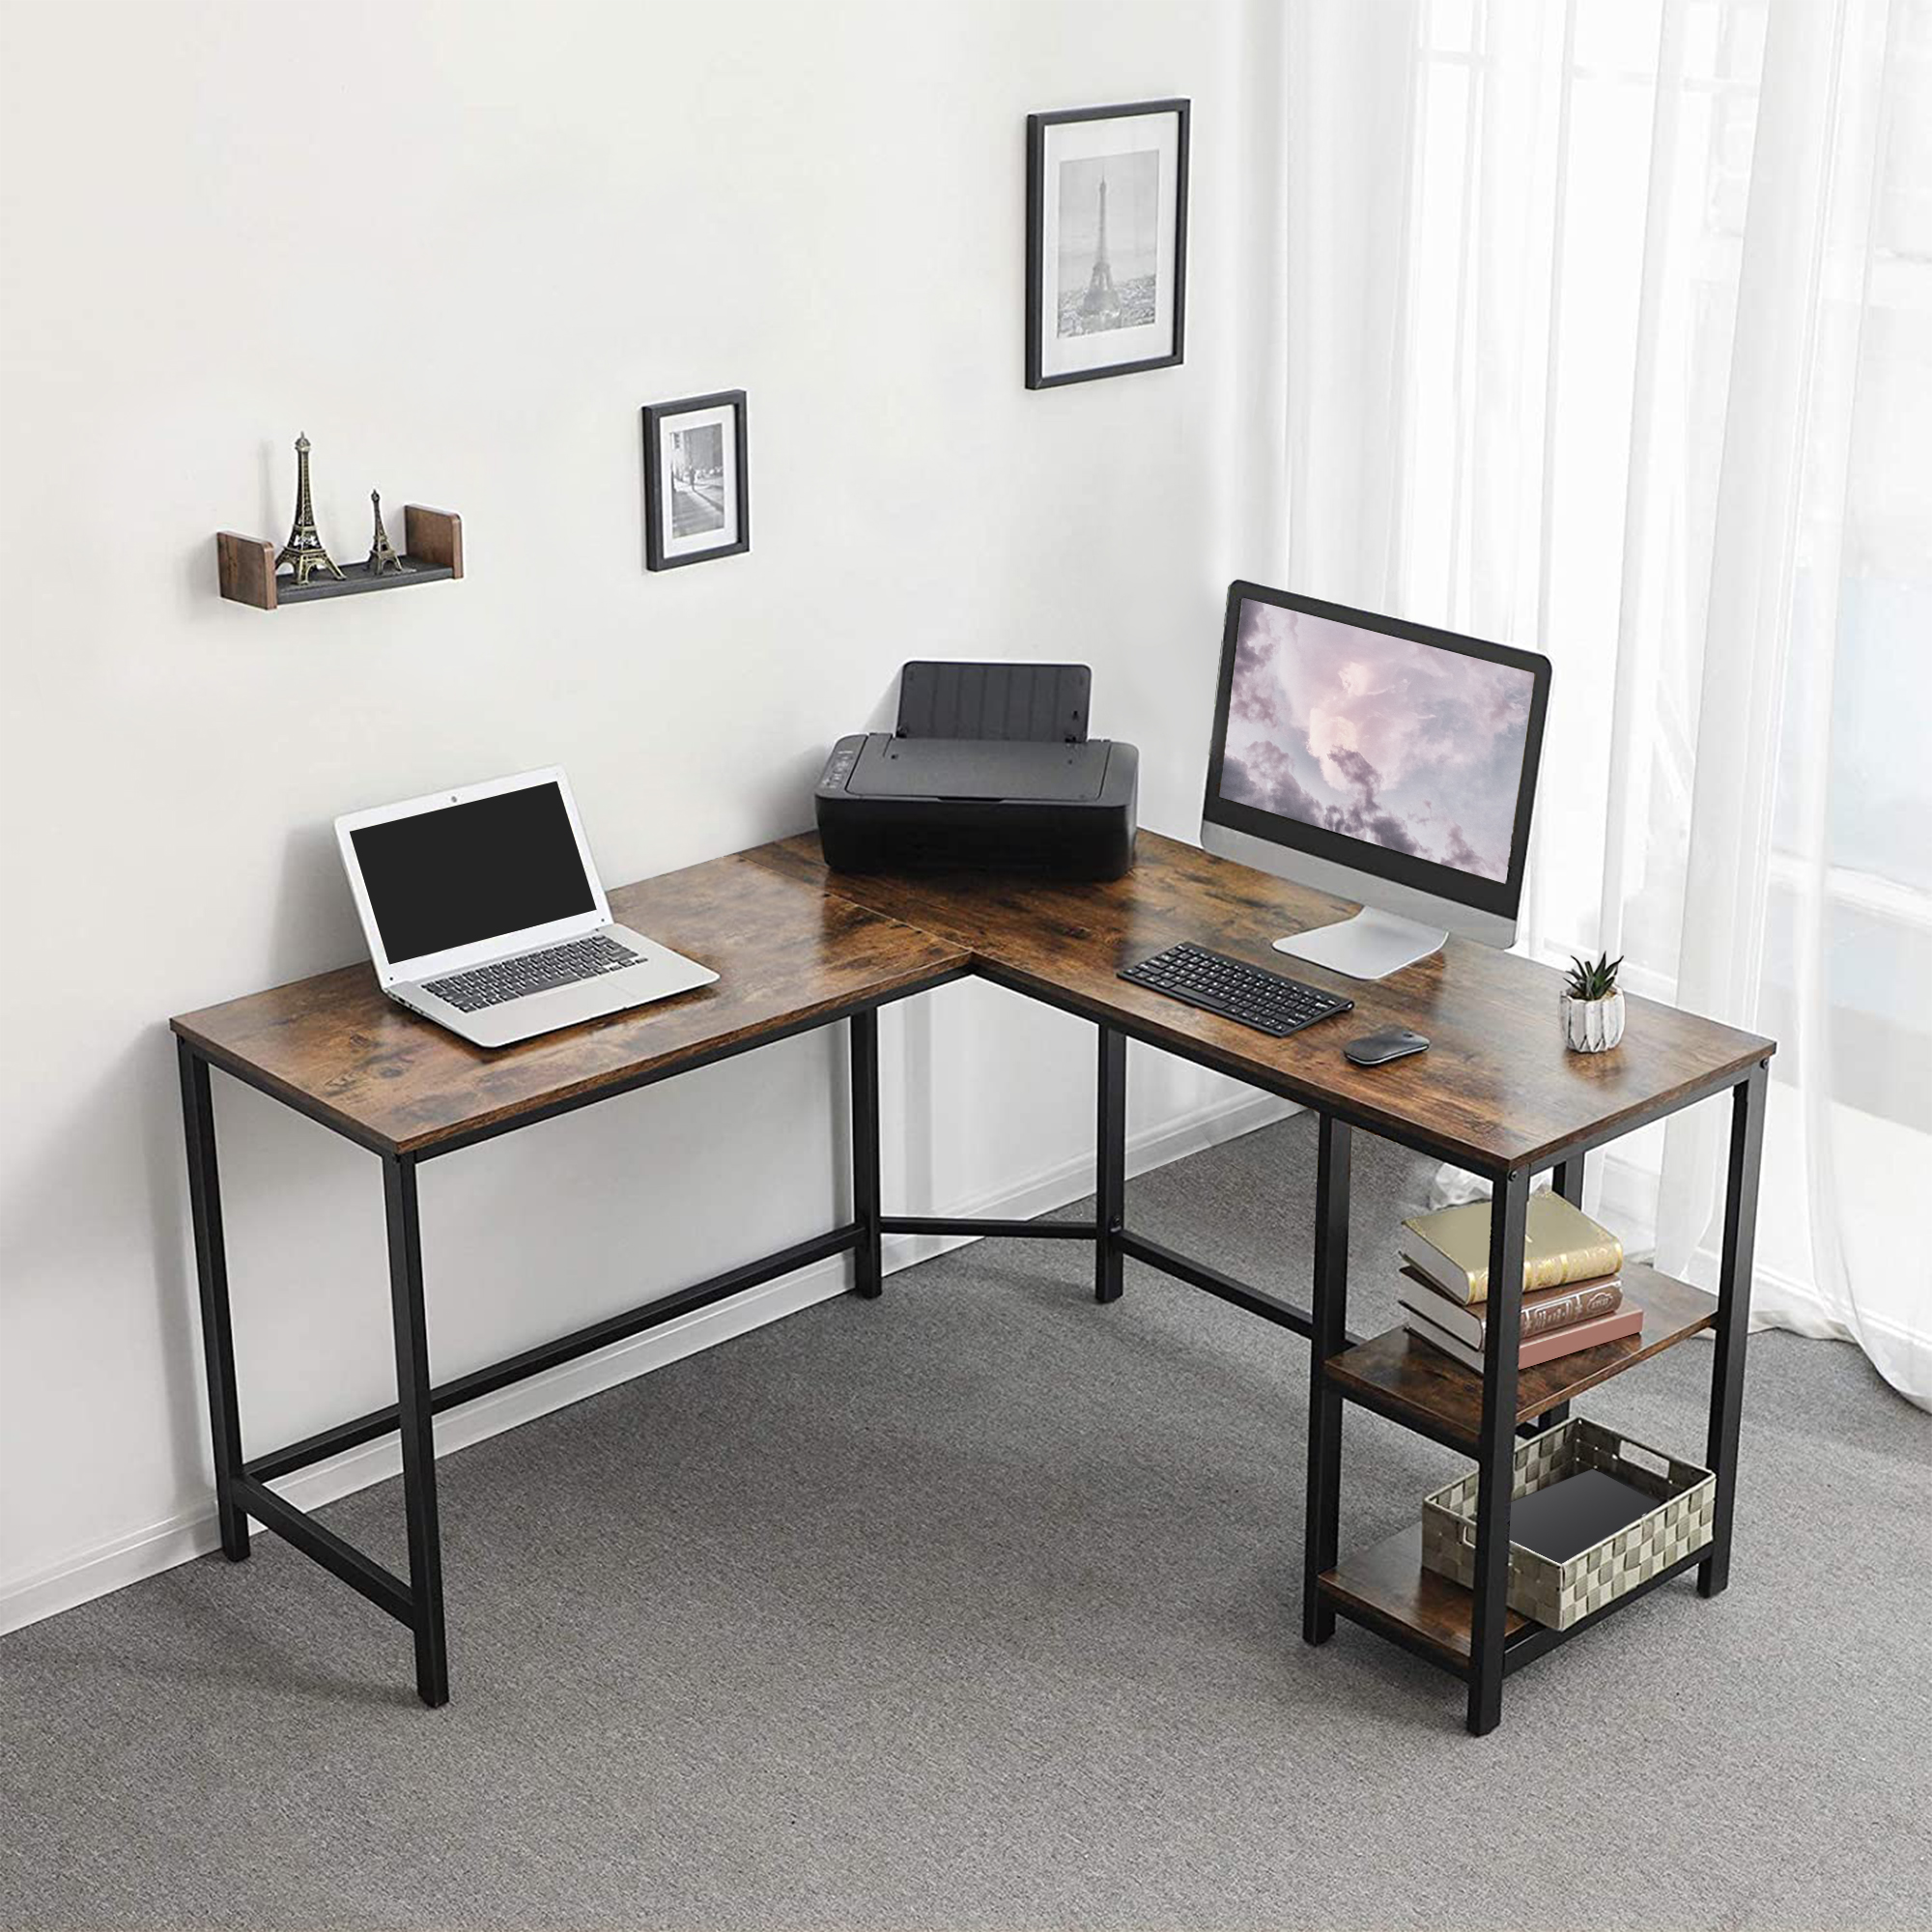 Computer Desk Wood And Metal Frame L-Shape With 2 Shelves, Brown And Black